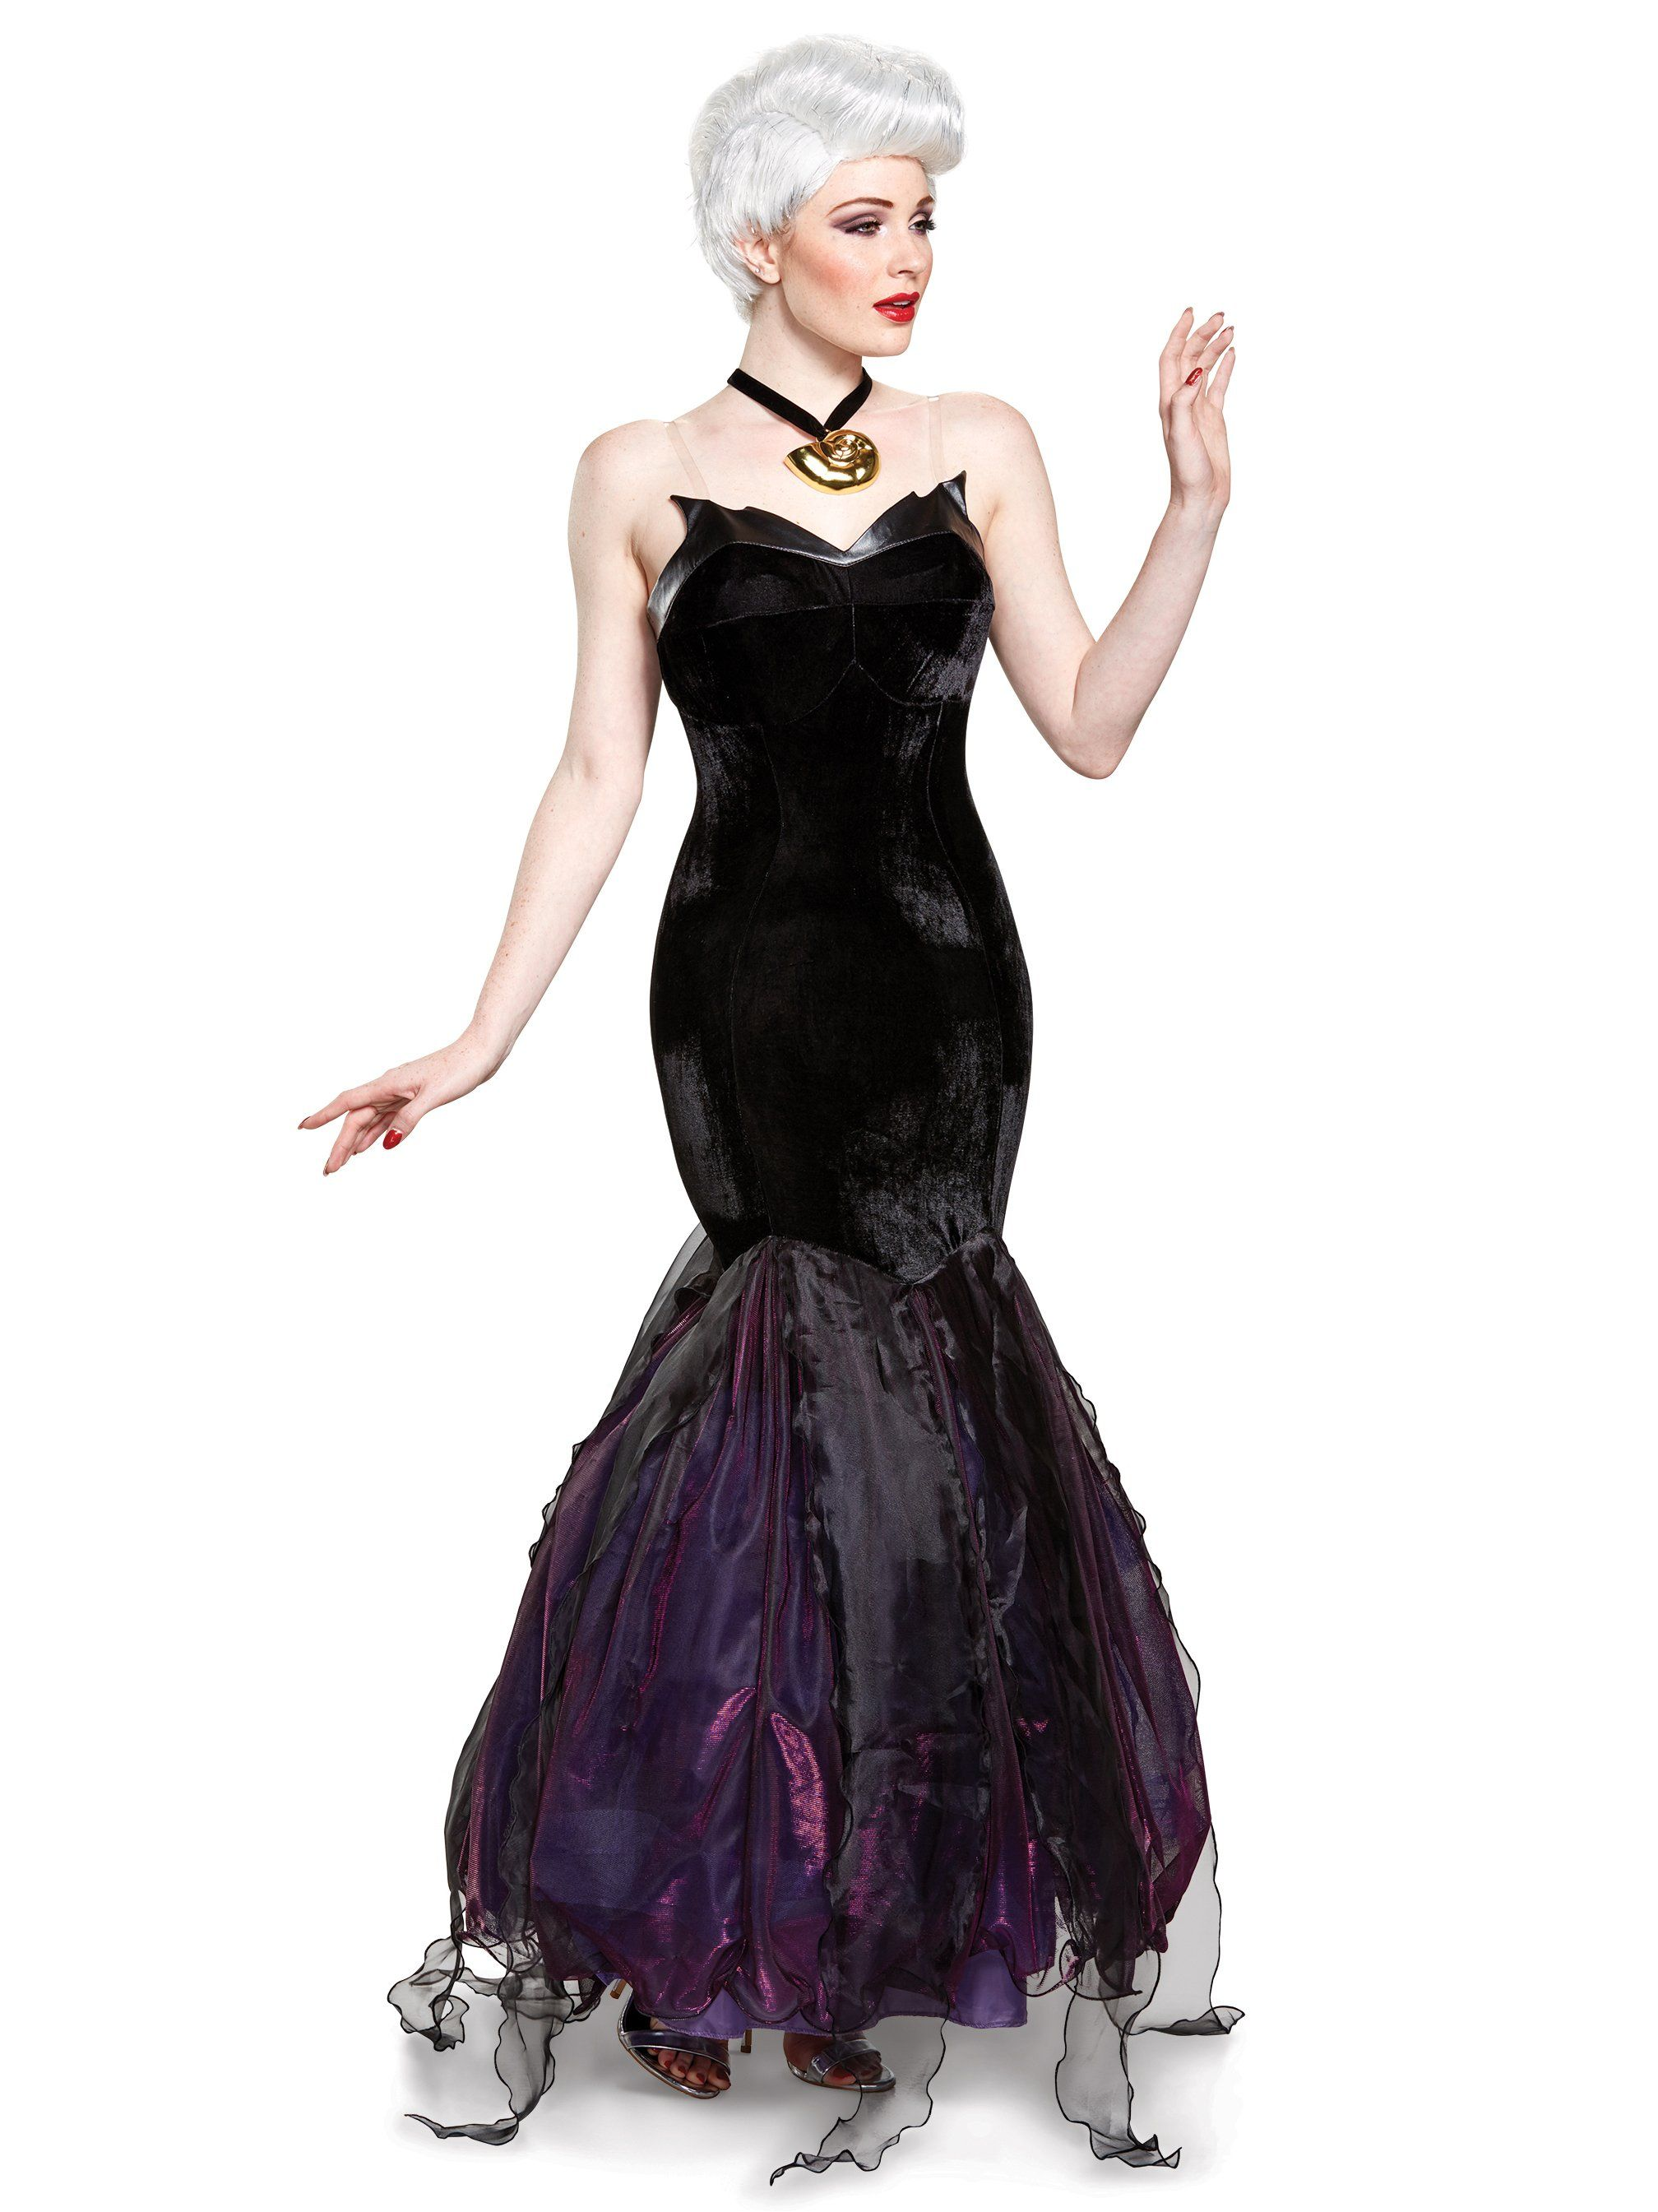 27b2ef176 This costume features a more stylized Ursula look with a strapless black  velvet dress and purple accents. Could also work for malificent. The Little  Mermaid ...